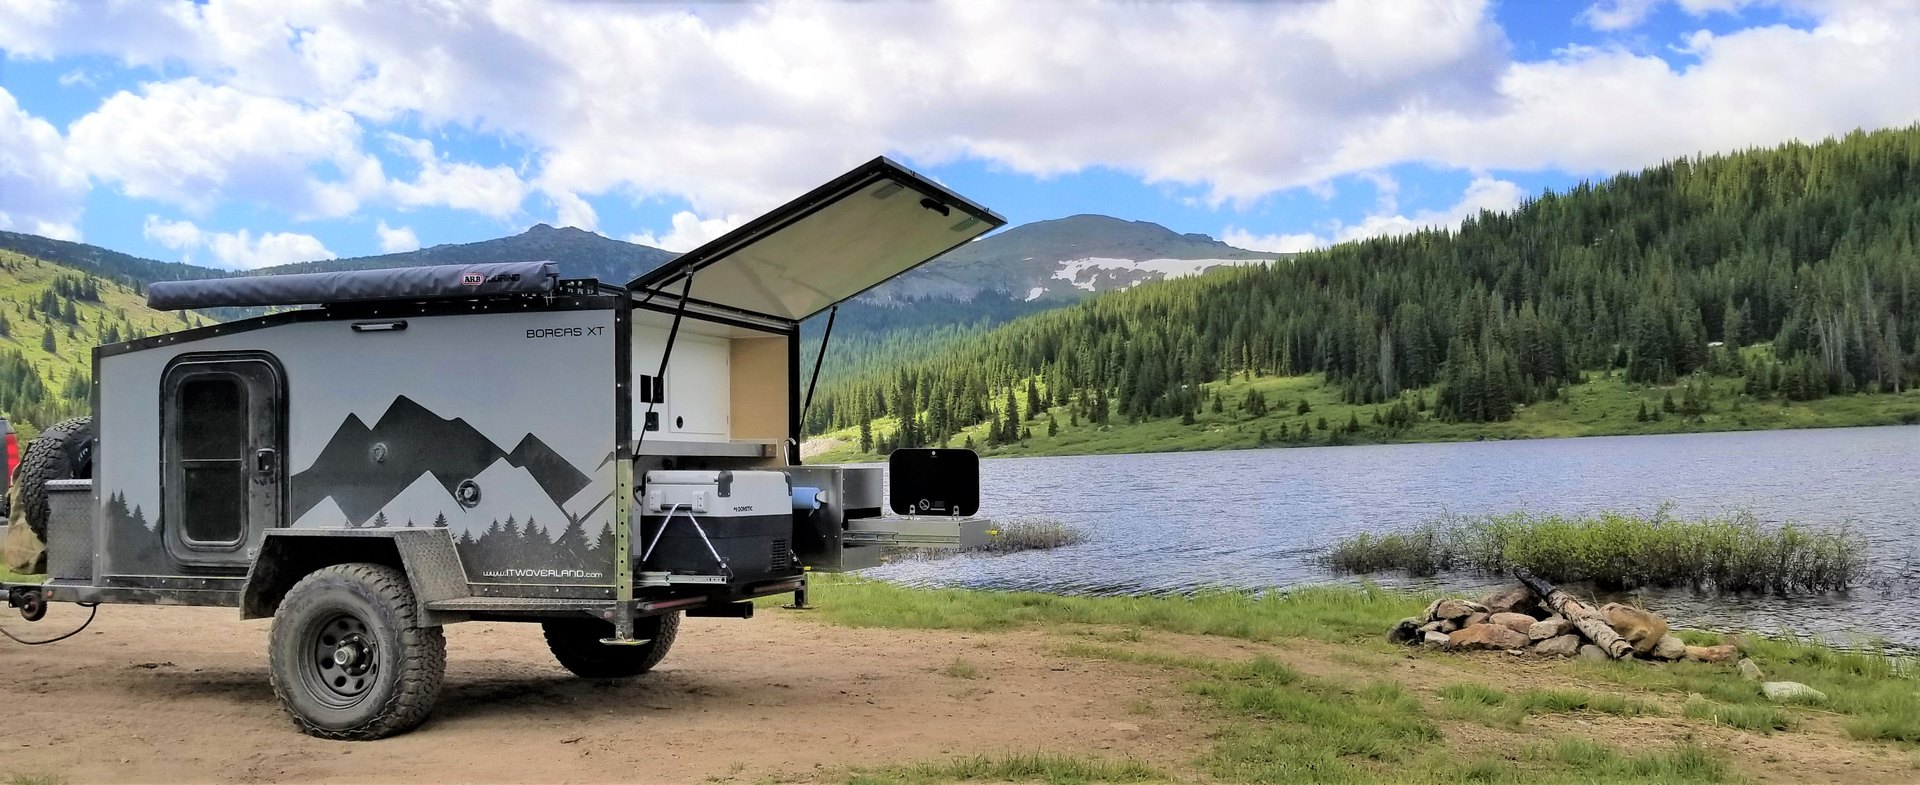 Camper Rental in Colorado | Into The Wild Overland